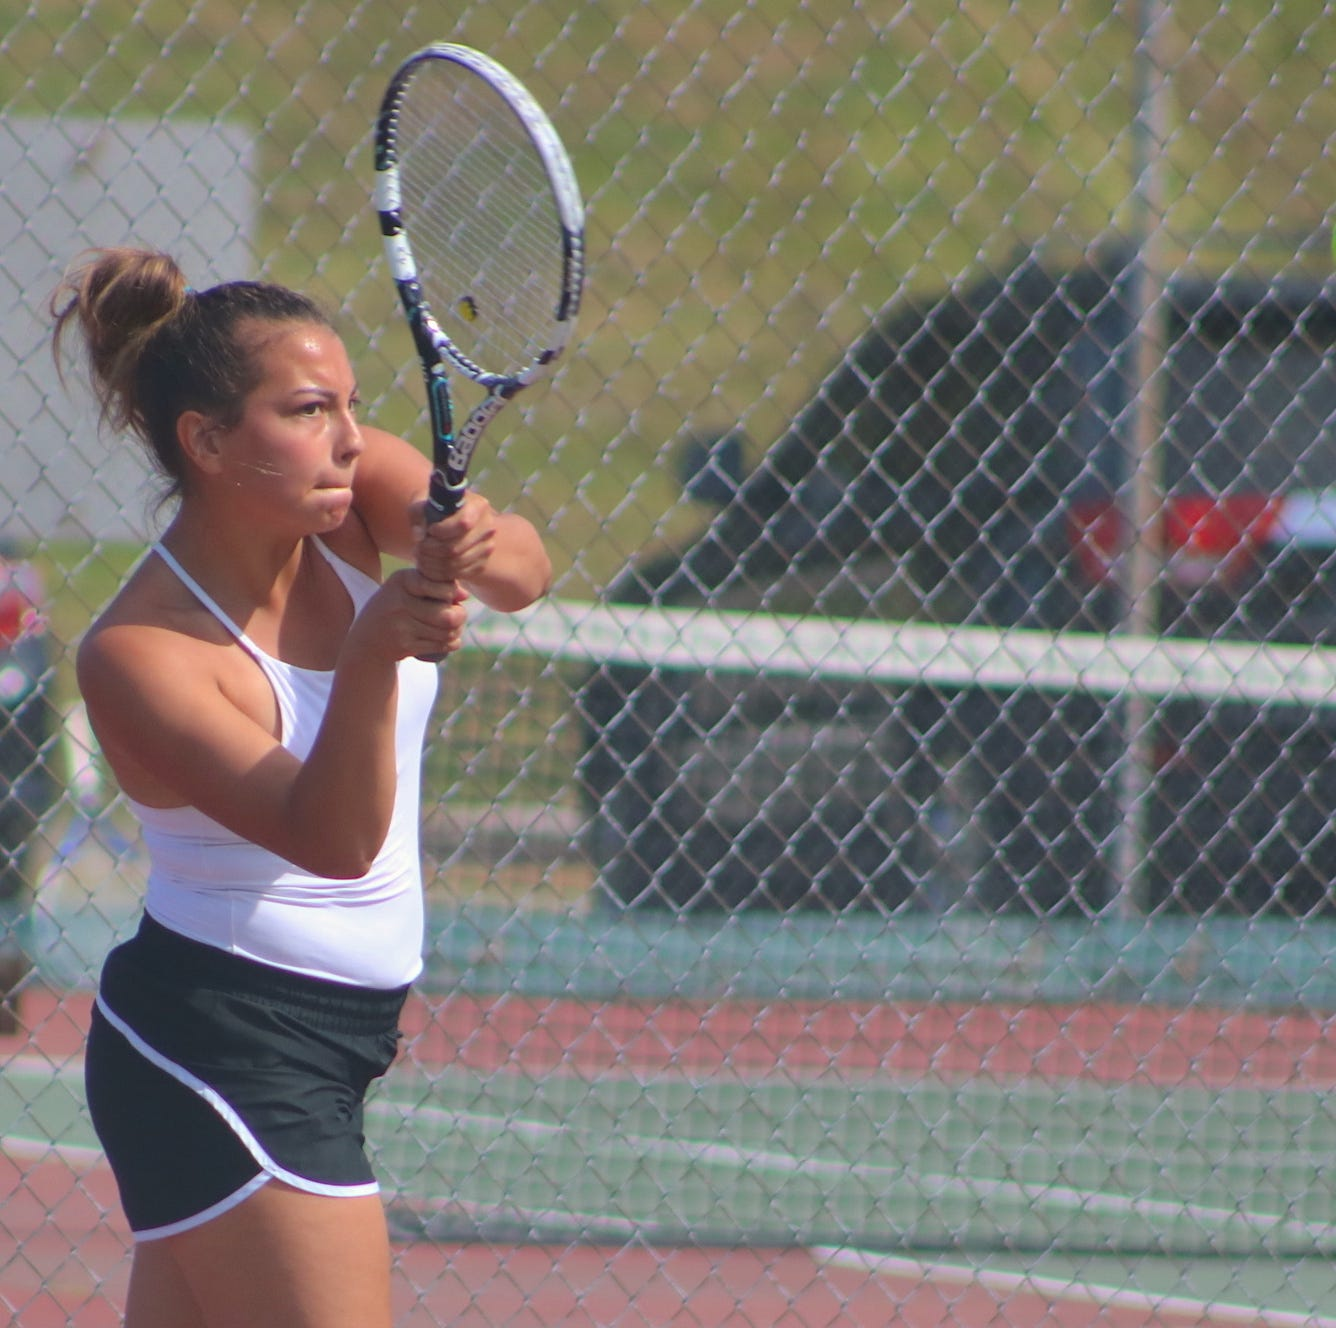 West Sound Report: Trojans' Nemeth wins tennis title